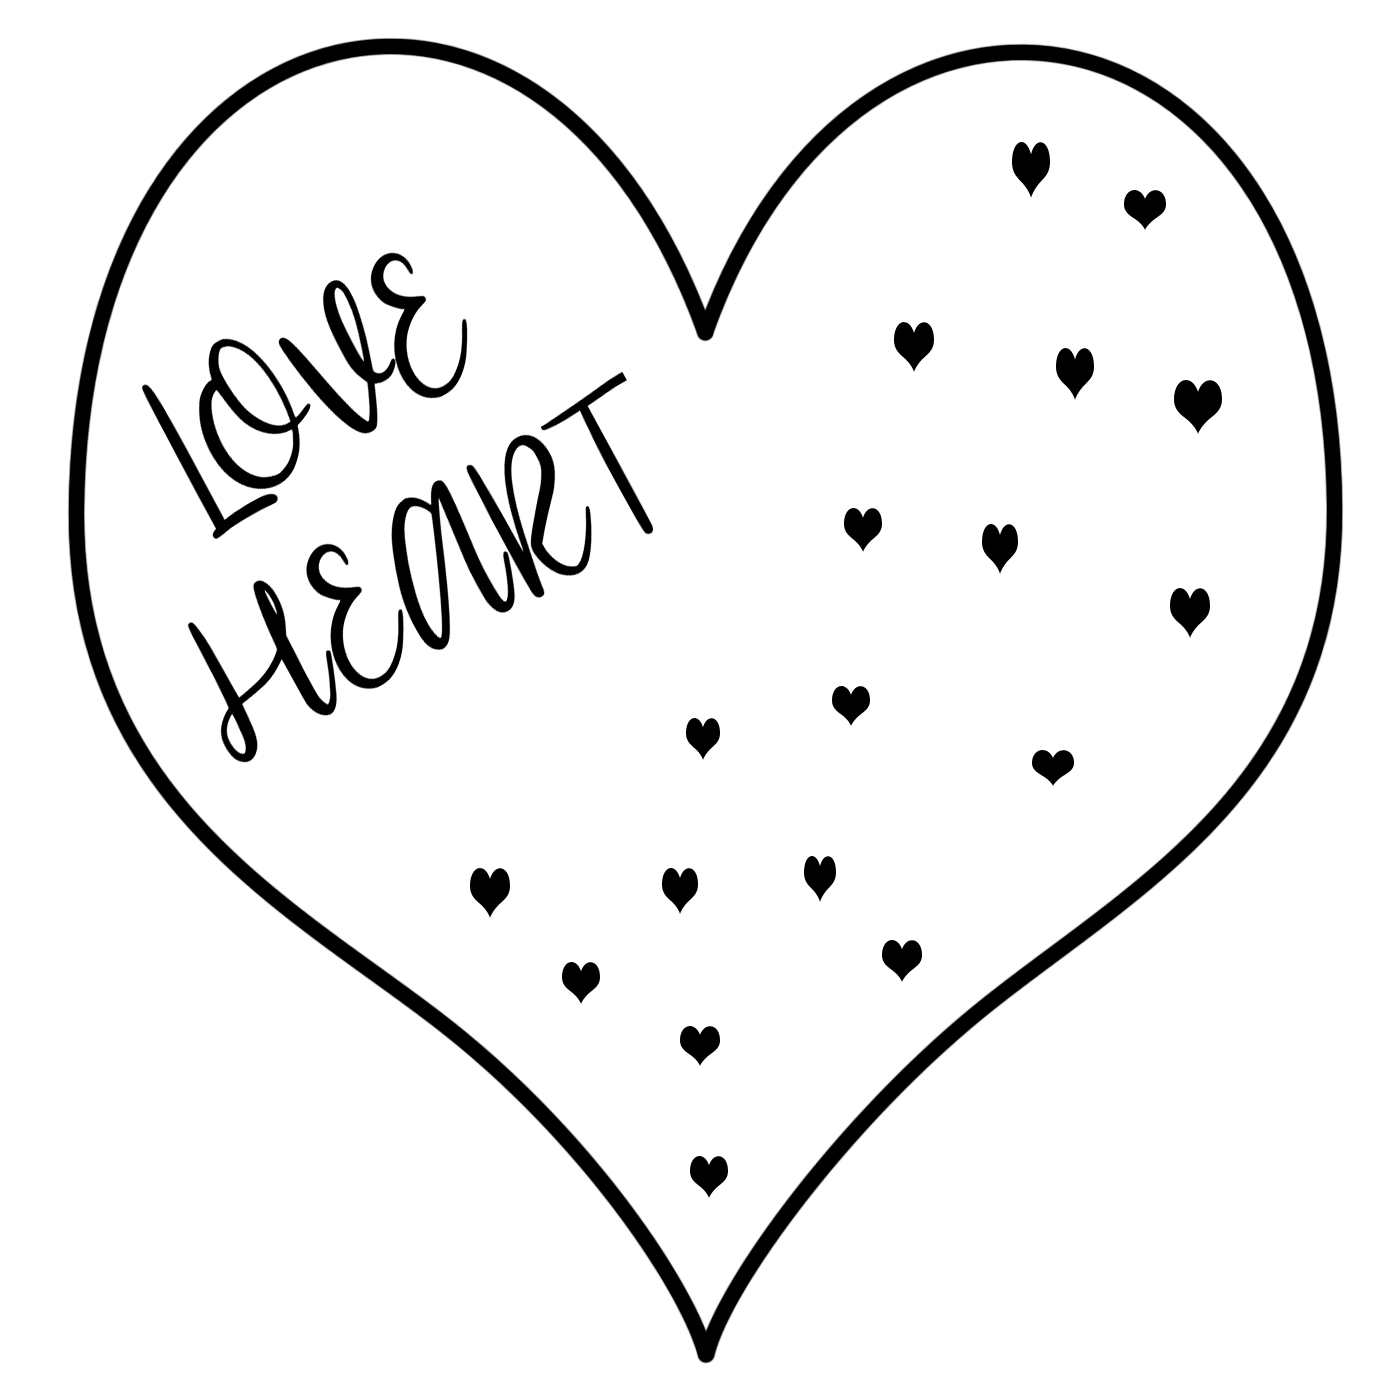 cool heart coloring pages friendship day special love heart drawing love heart cool pages heart coloring